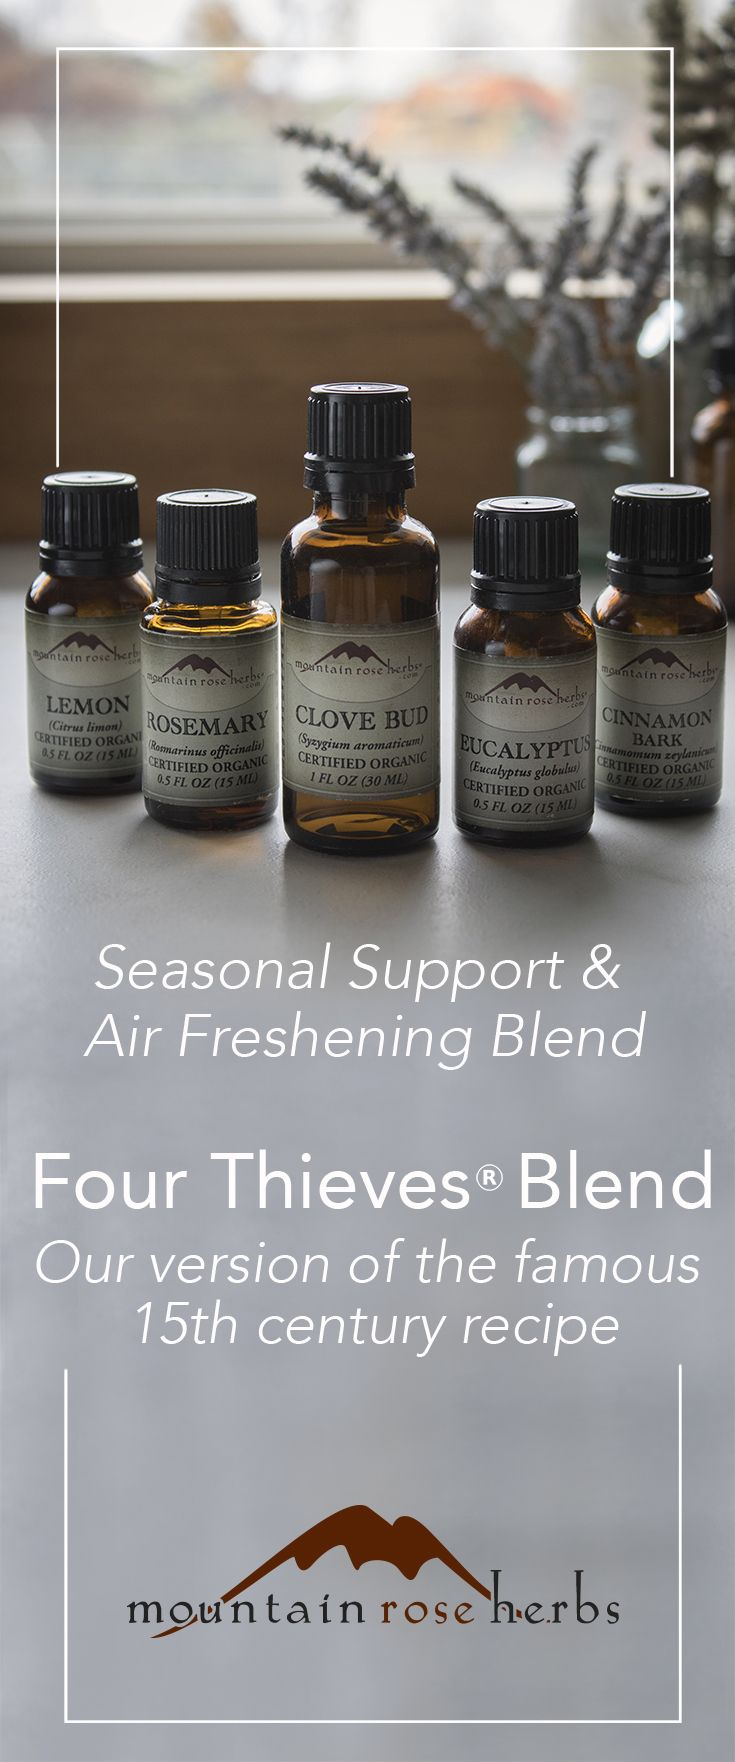 ThievesOil - learn the story behind the name of this powerful blend of essential oils, traditionally used to maintain healthy well-being during the winter months and to freshen the air.